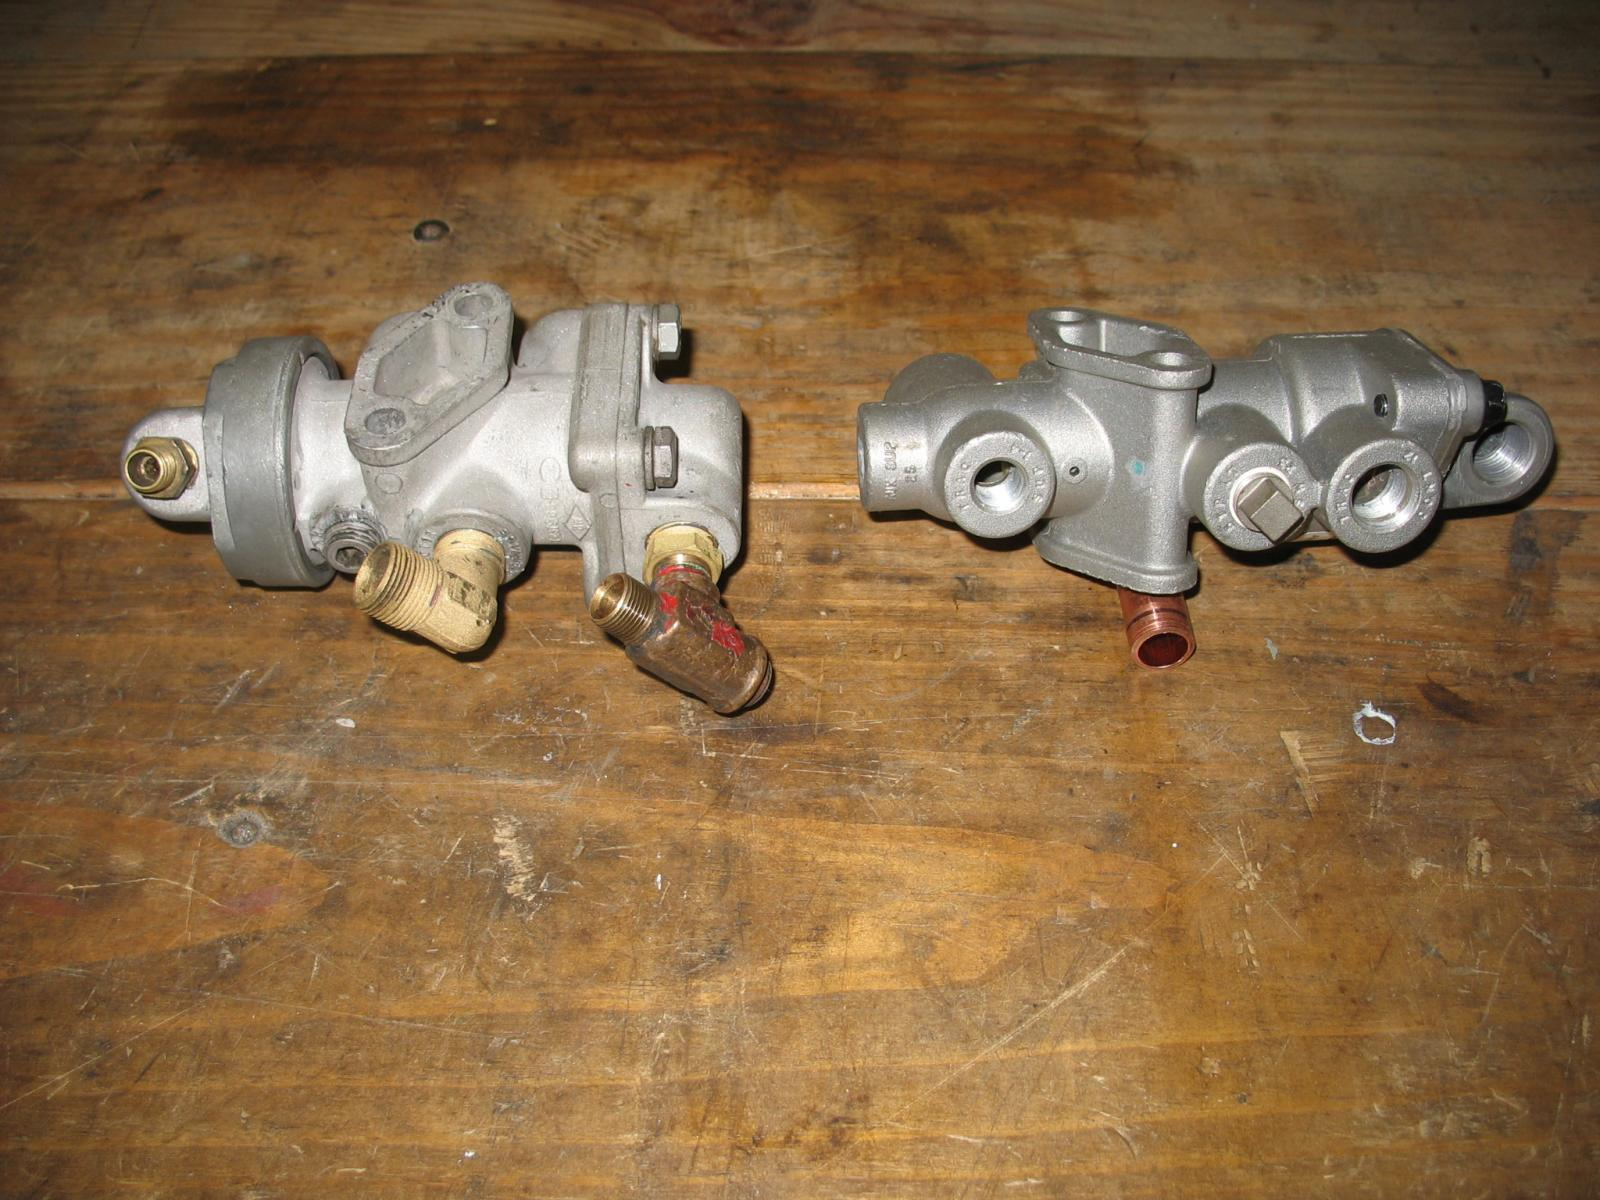 Mack Tractor Truck Air Valve On Firewall : Question on tractor protection valve air systems and